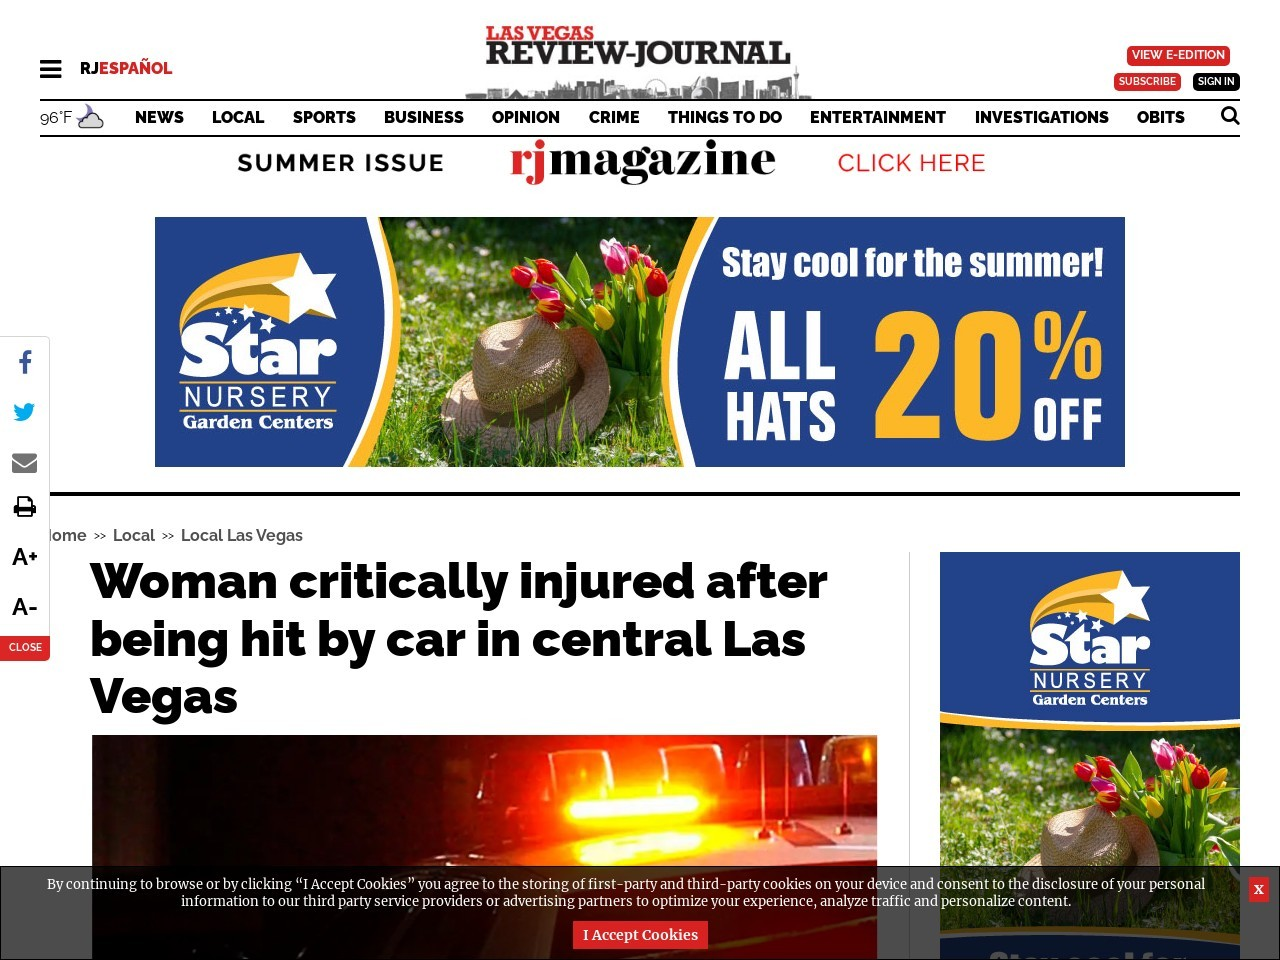 Woman critically injured after being hit by car in central Las Vegas